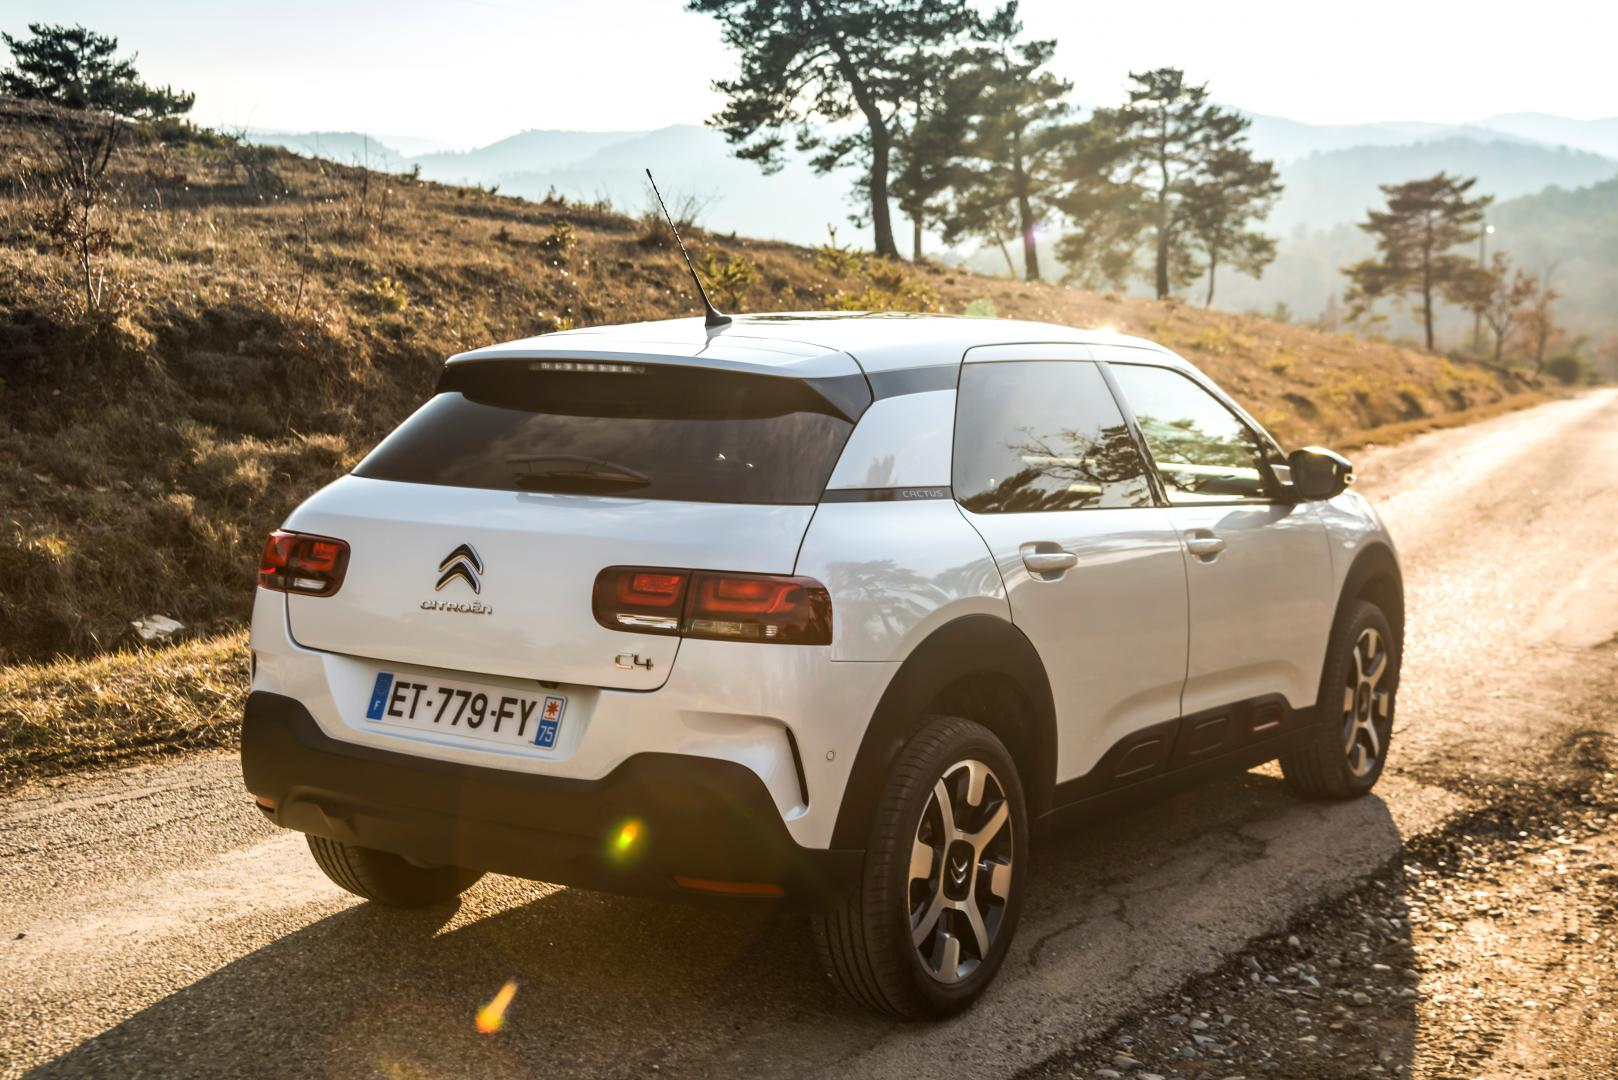 Citroën C4 Cactus PureTech 110 Business (2018)